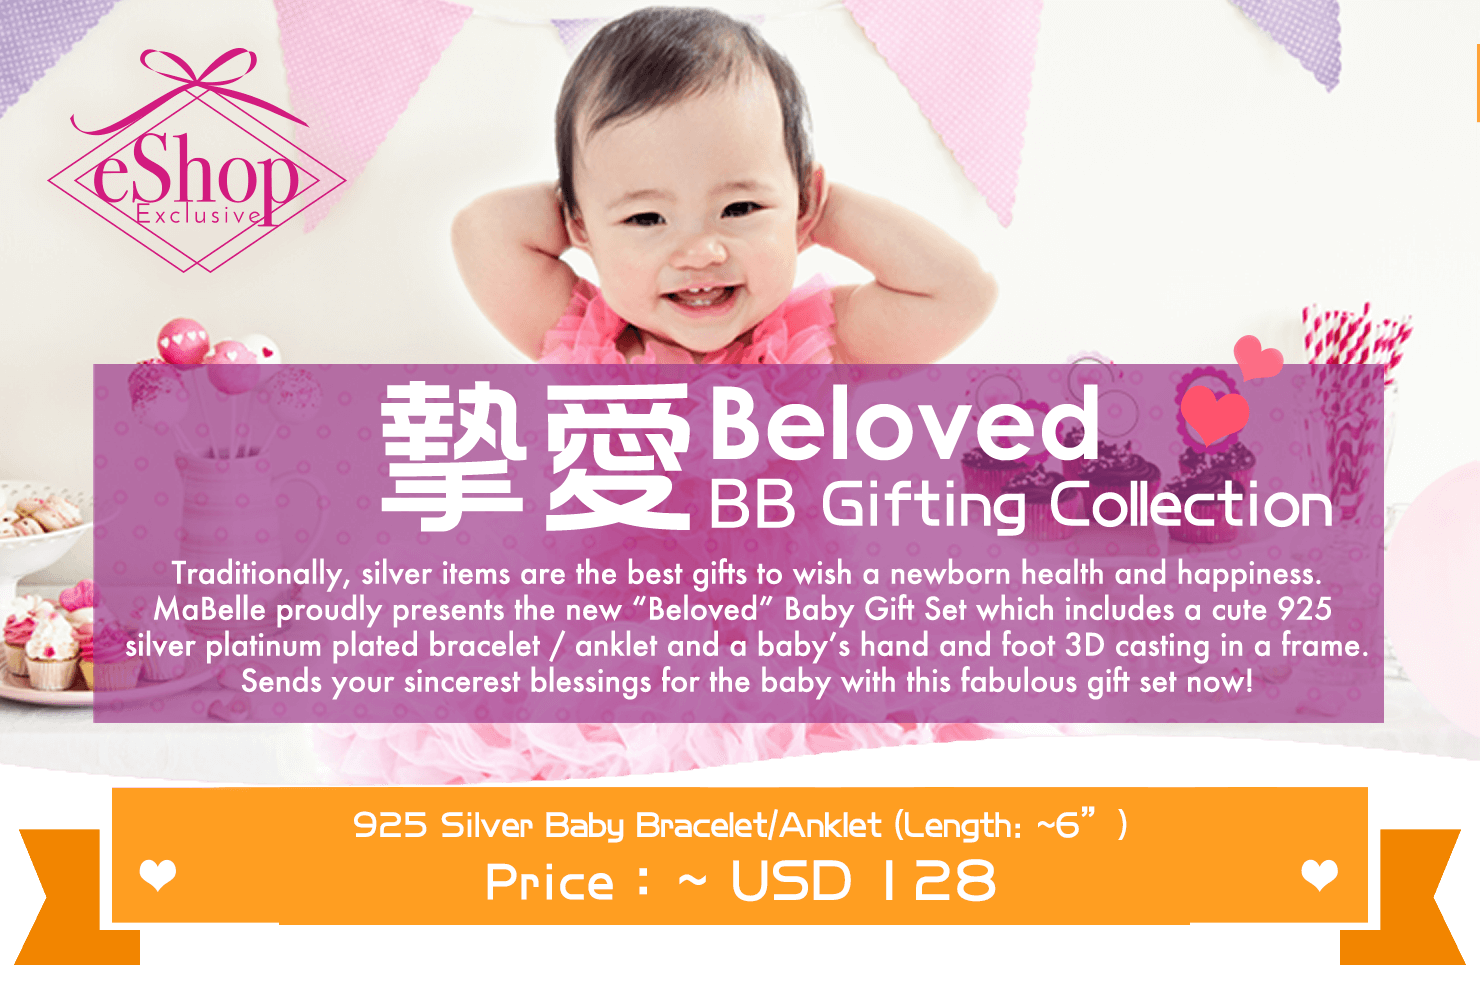 Beloved Baby Gifting Collection